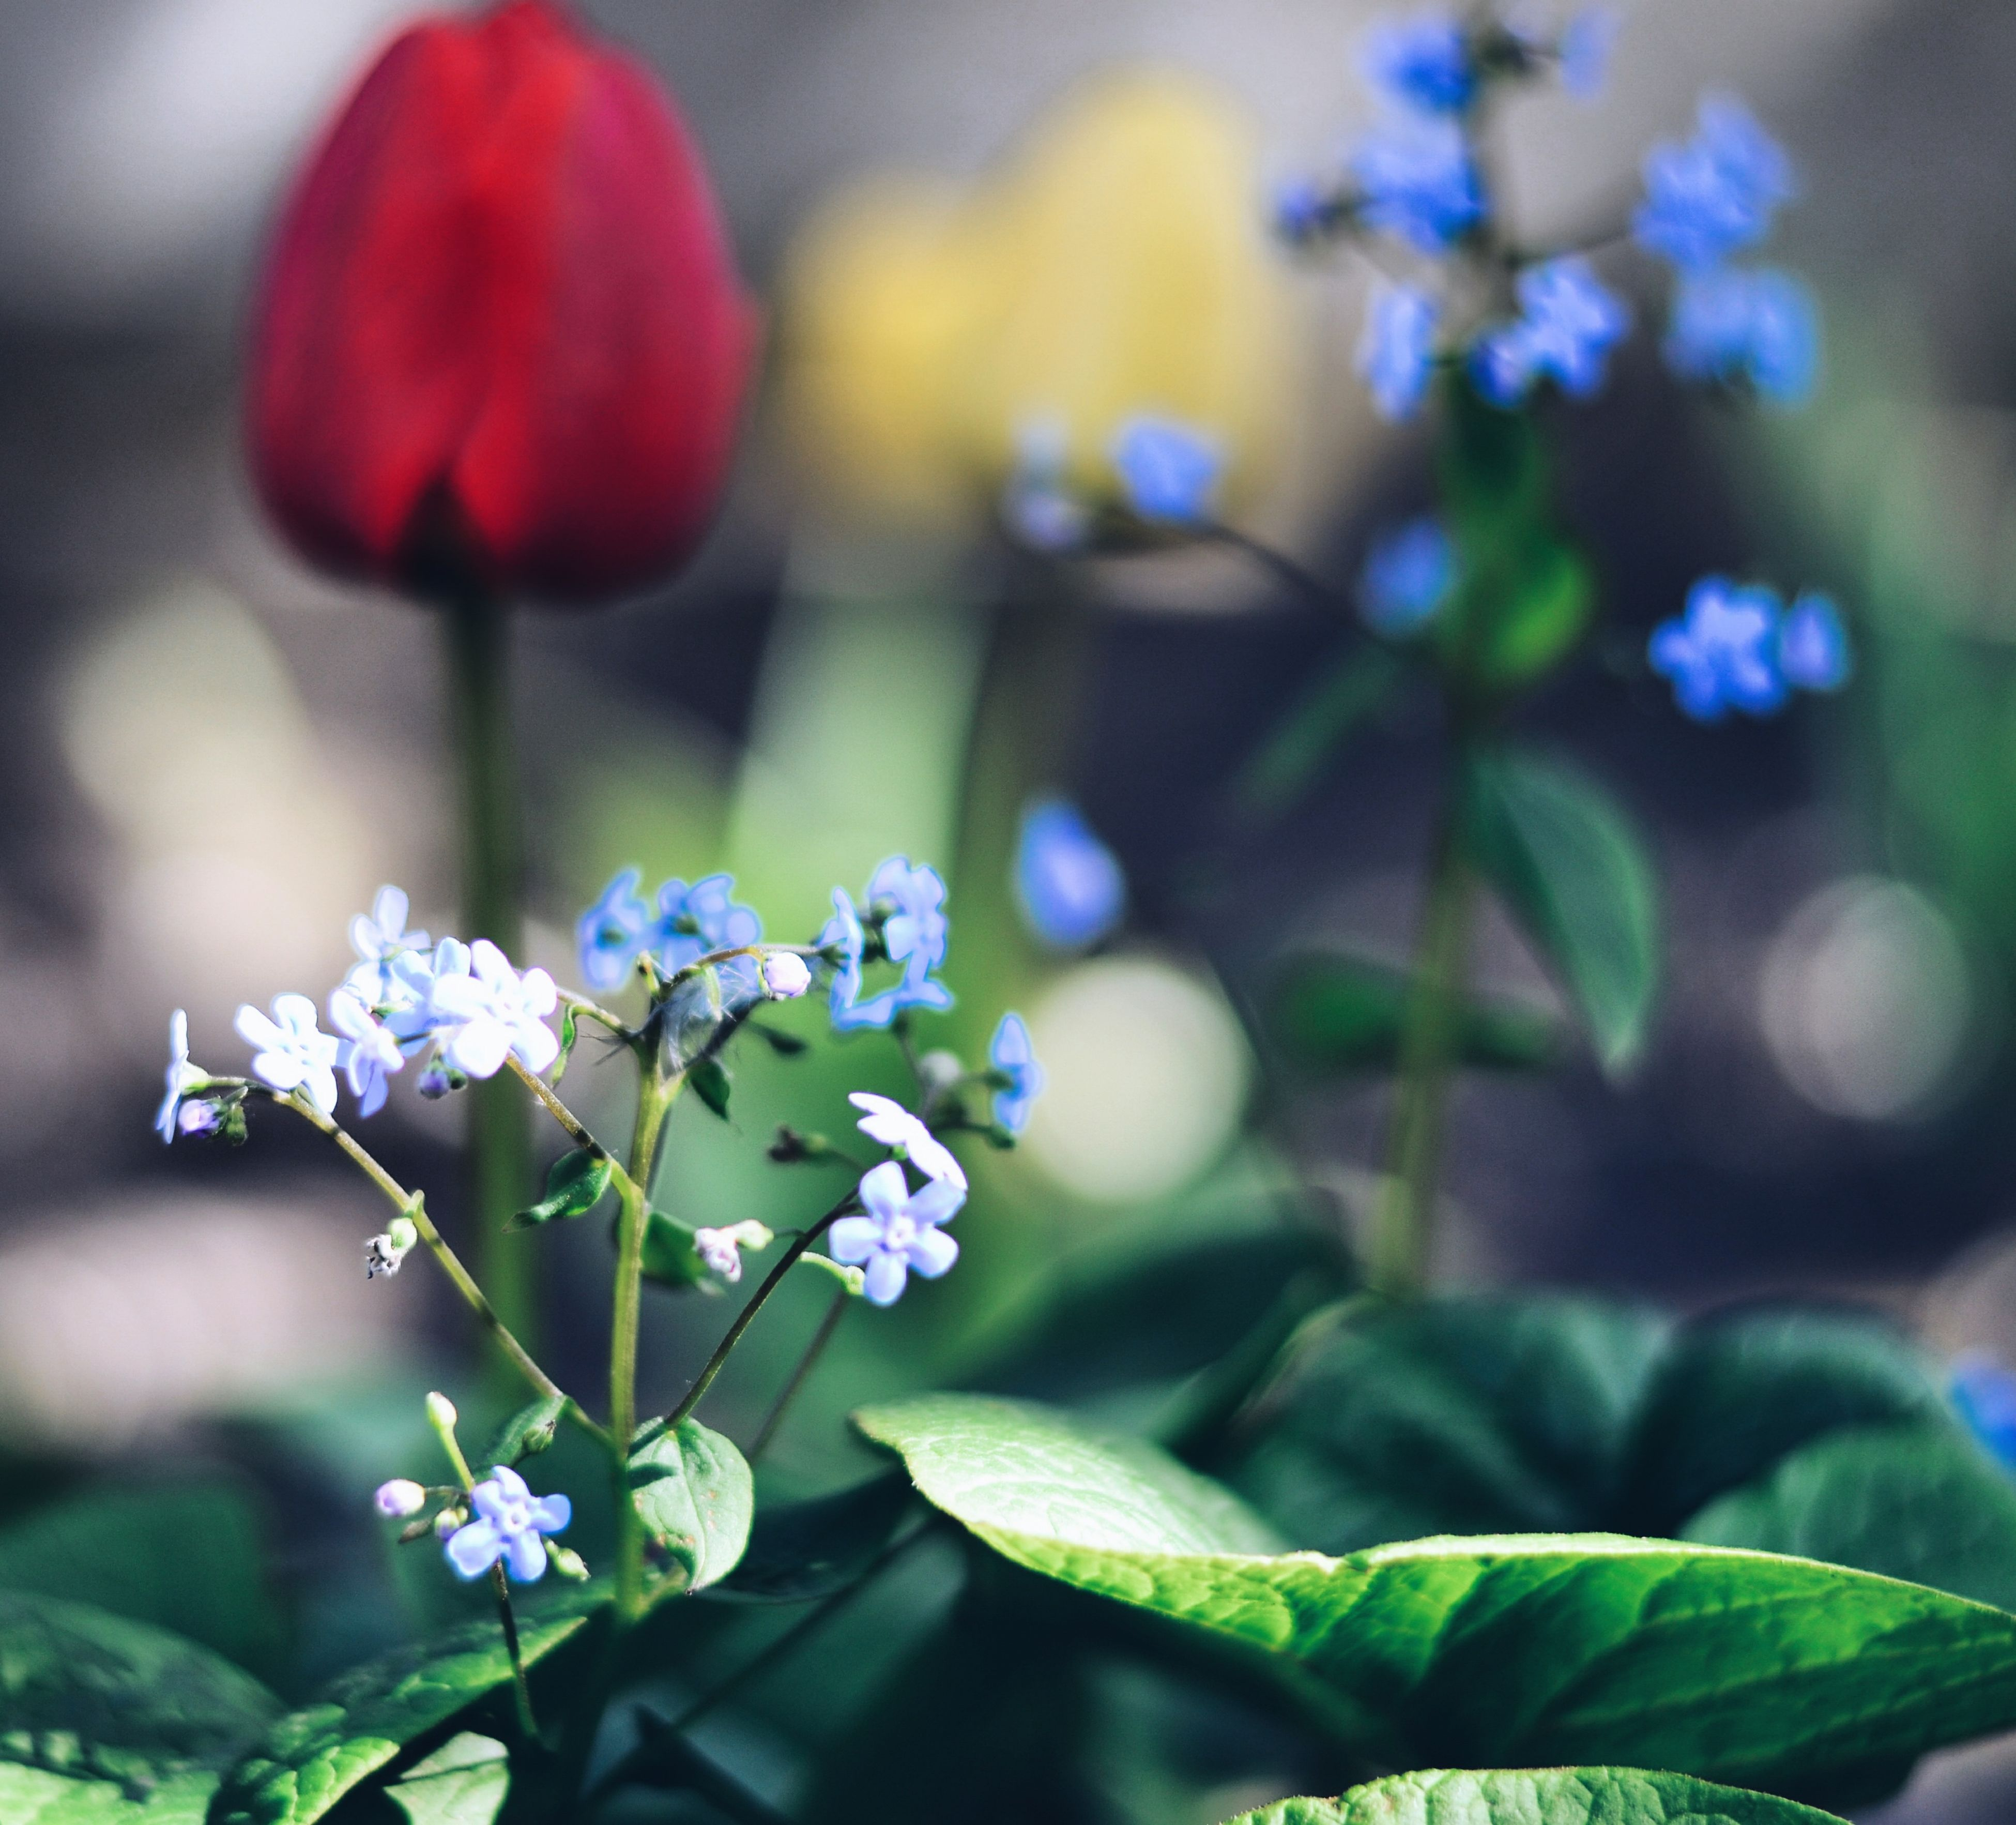 flower, freshness, fragility, petal, growth, focus on foreground, purple, beauty in nature, flower head, blooming, close-up, plant, nature, selective focus, in bloom, stem, park - man made space, outdoors, day, blossom